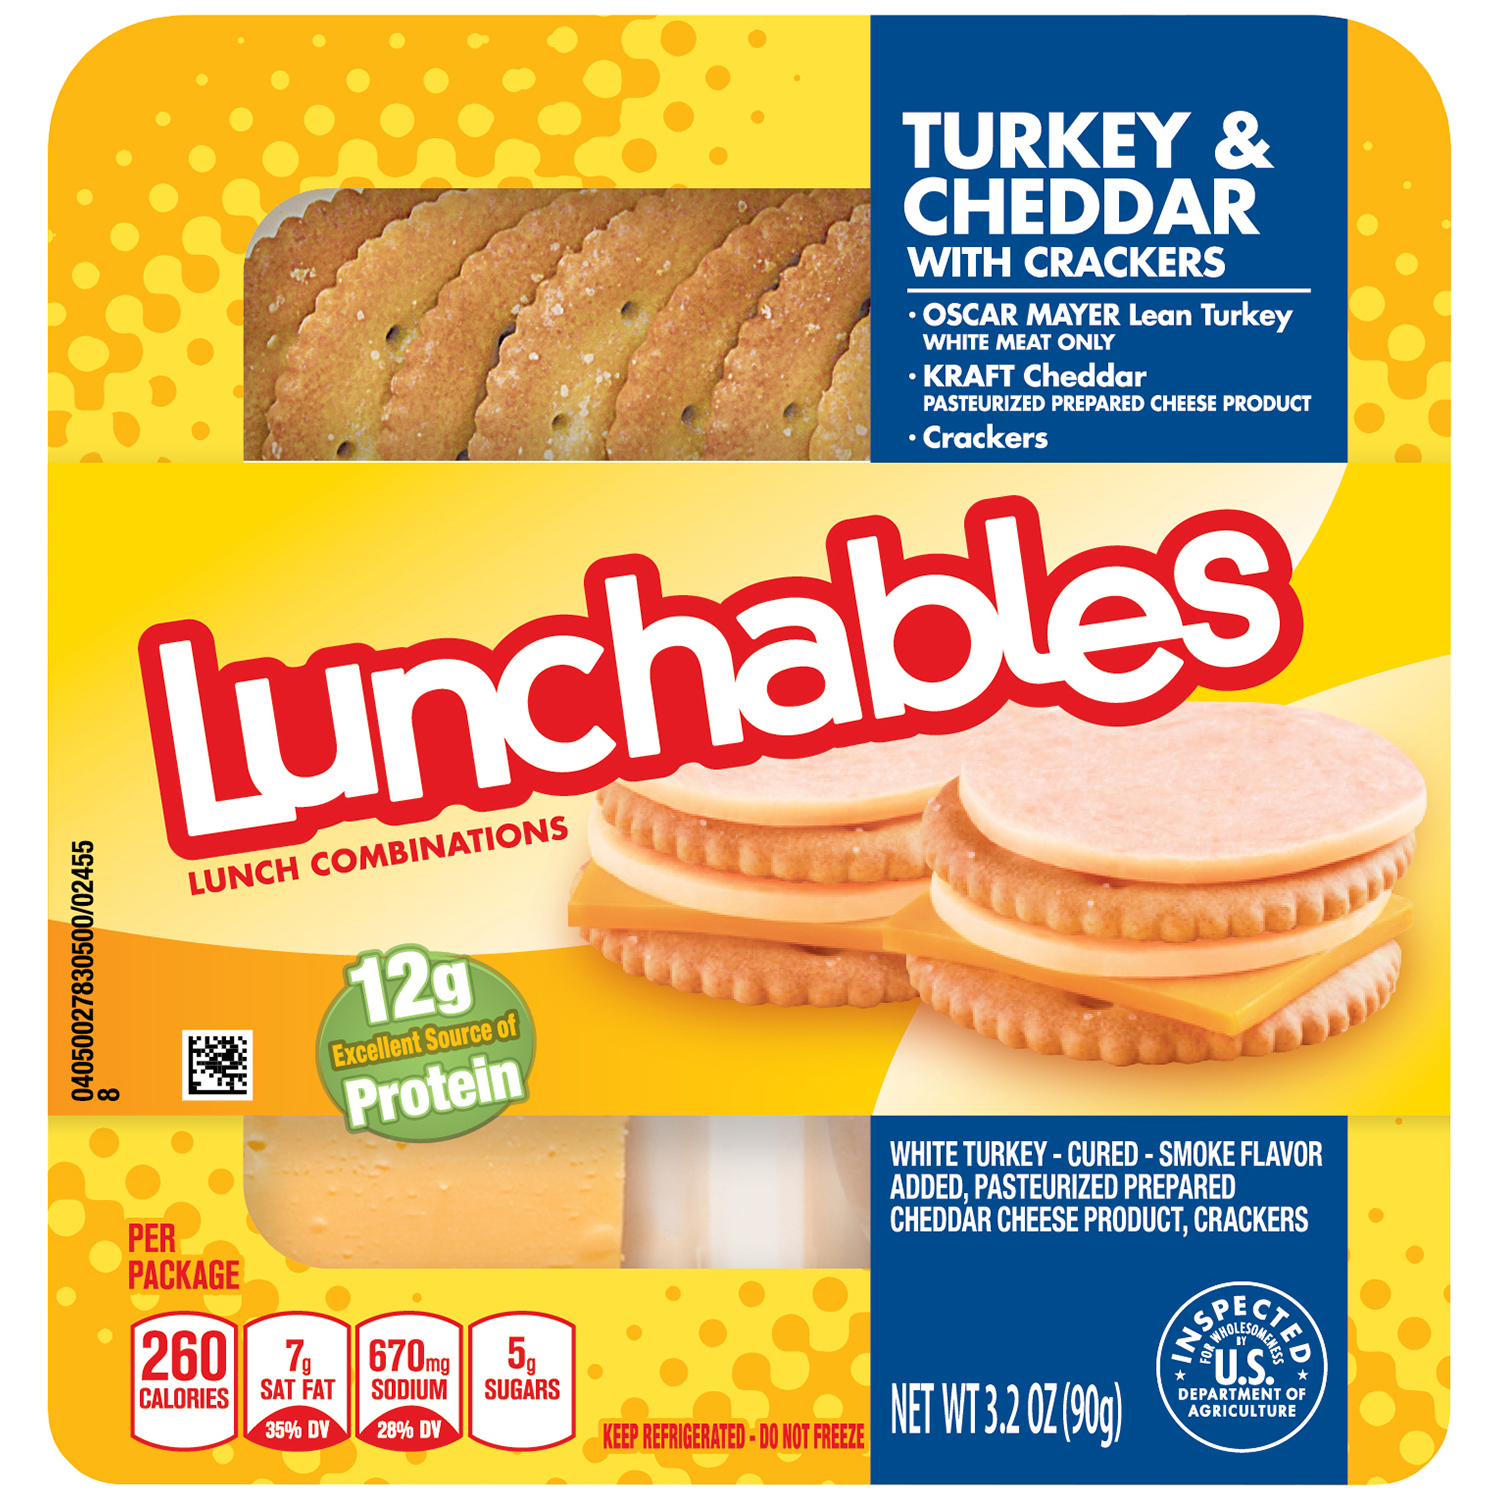 Lunchables Convenience Meals - Turkey and Cheddar 3.2 oz. image